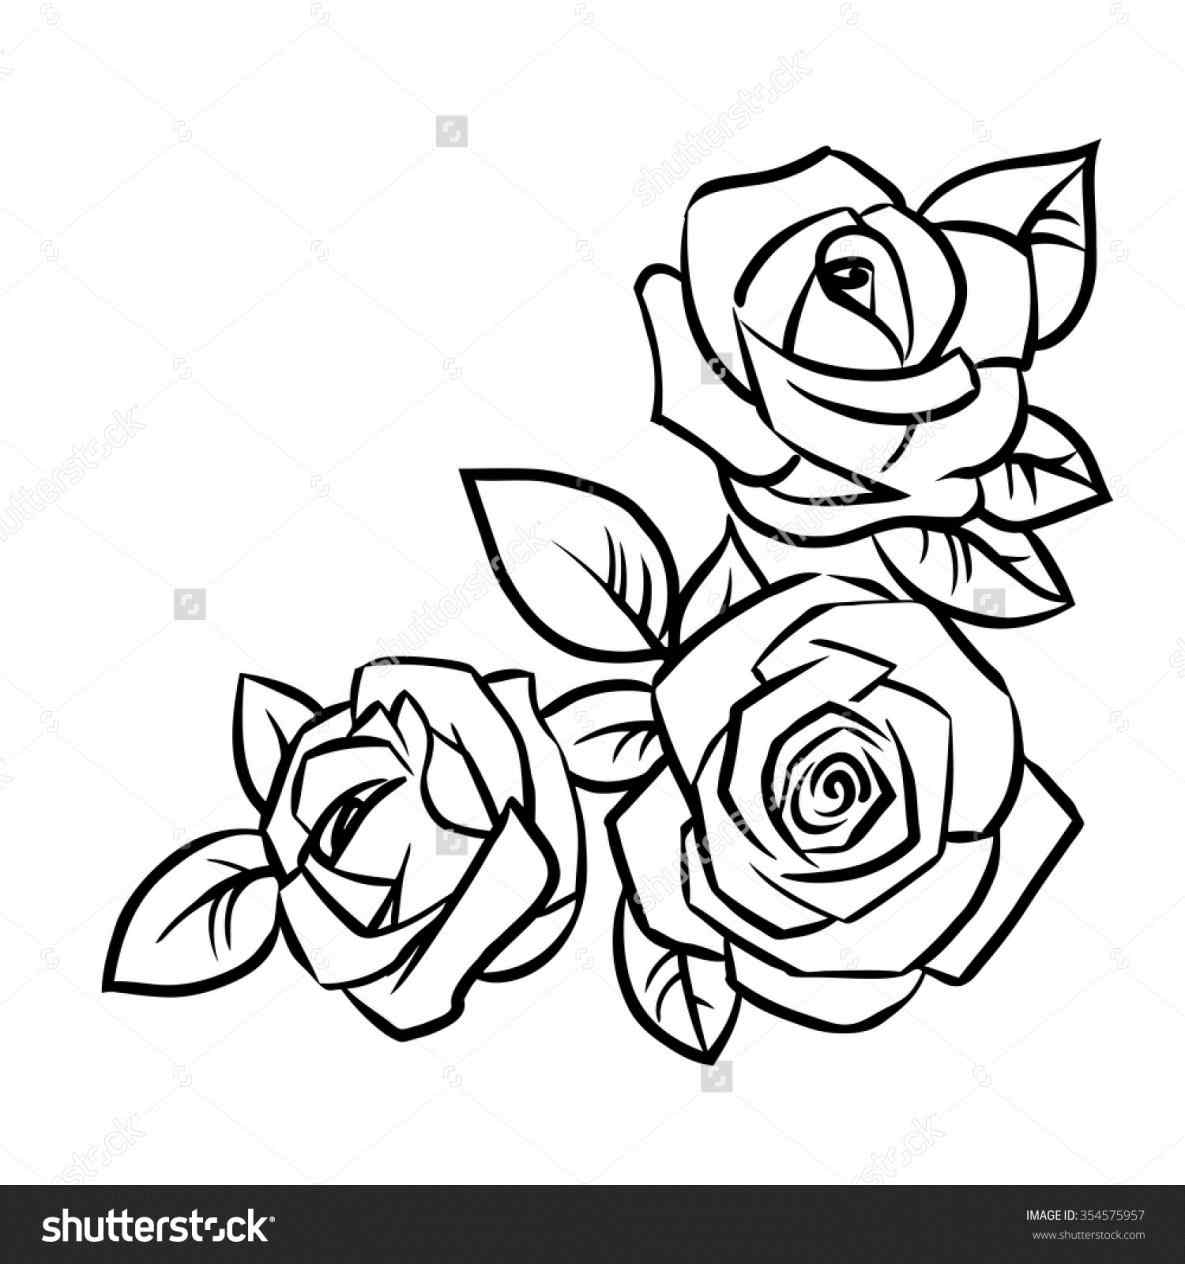 1185x1264 Gallery How To Draw A Rose Youtube,